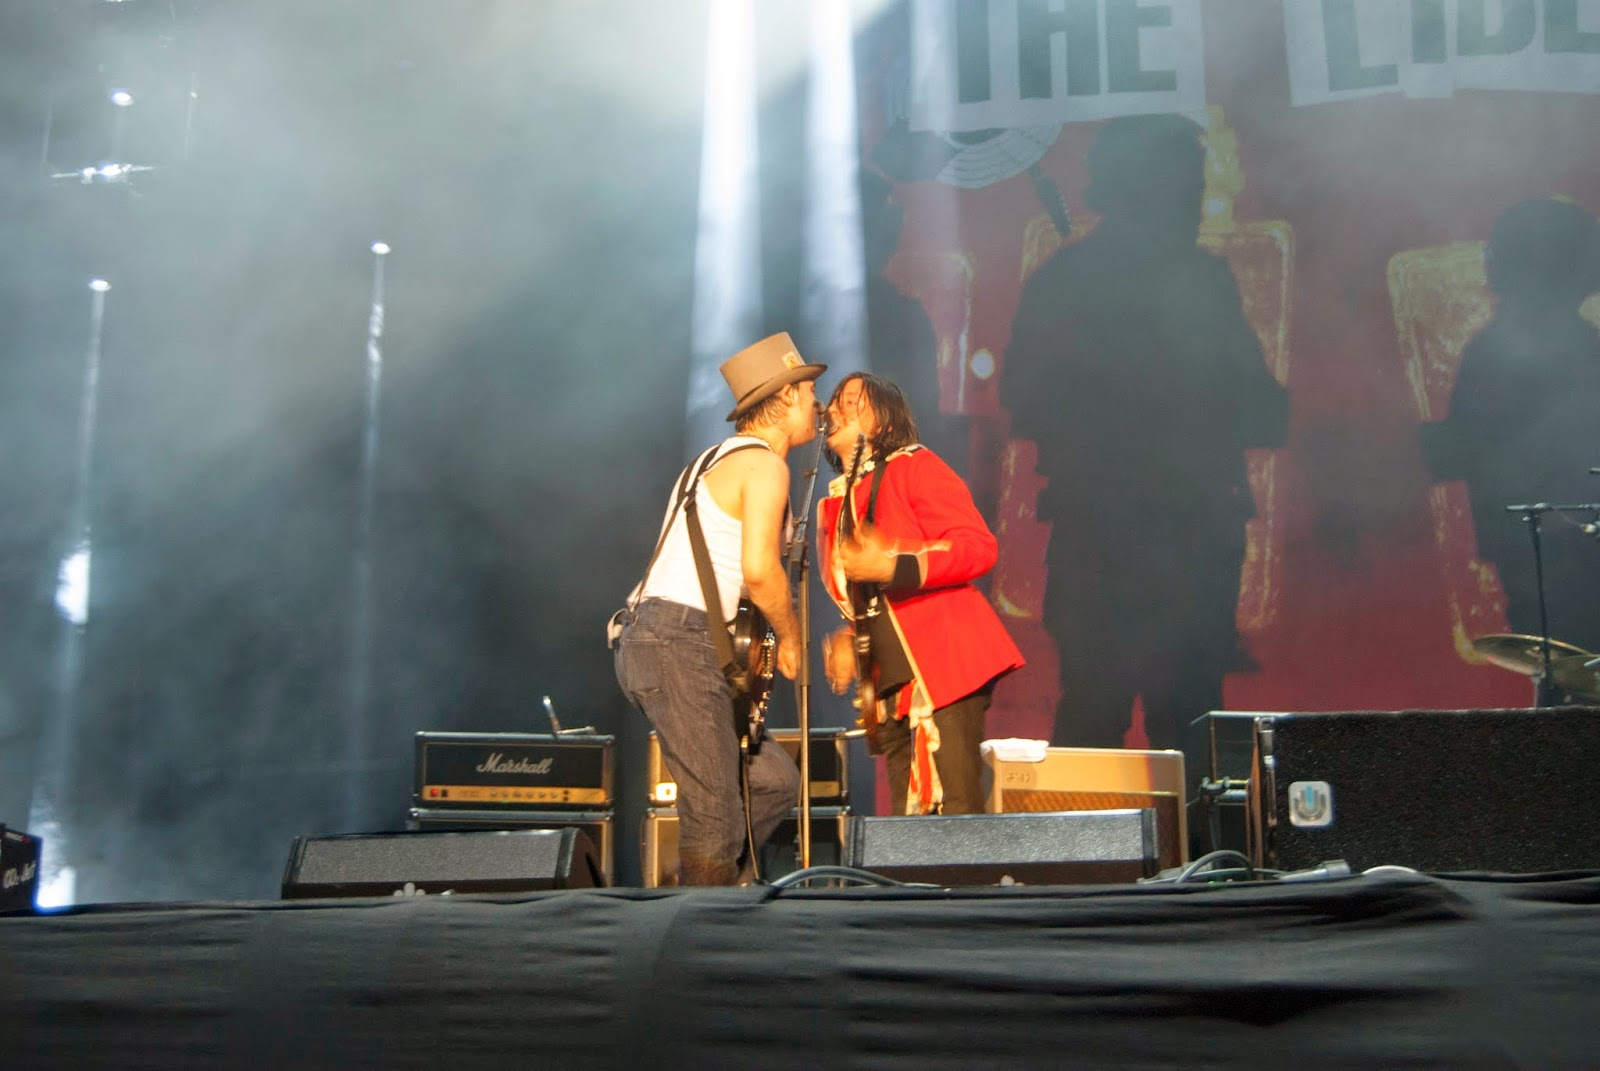 fib-2014-the-libertines-dandy